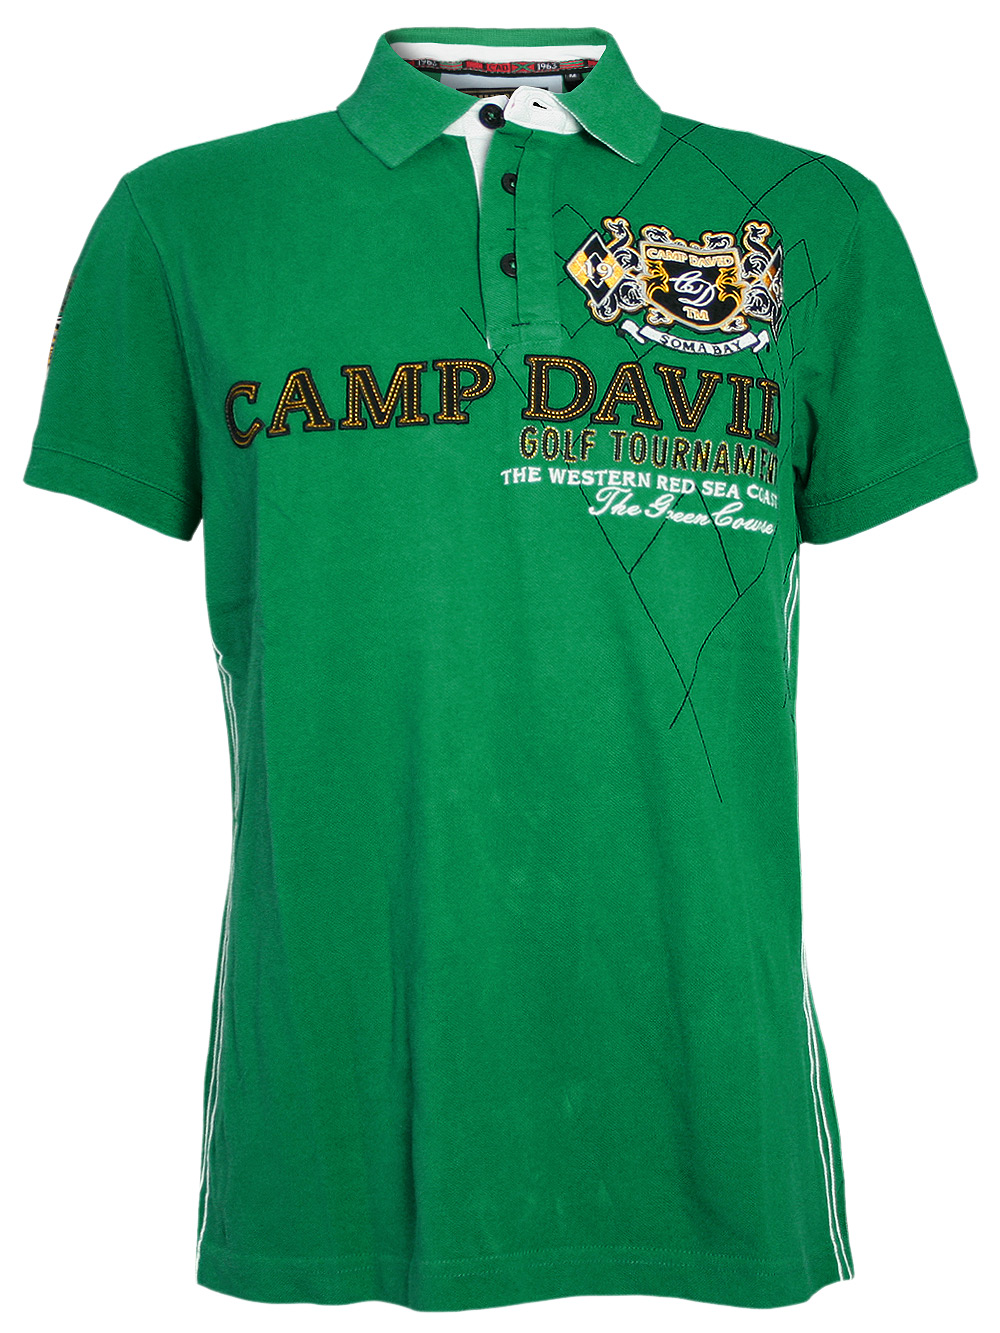 camp david herren polo shirt golf tournament gr n neu ebay. Black Bedroom Furniture Sets. Home Design Ideas